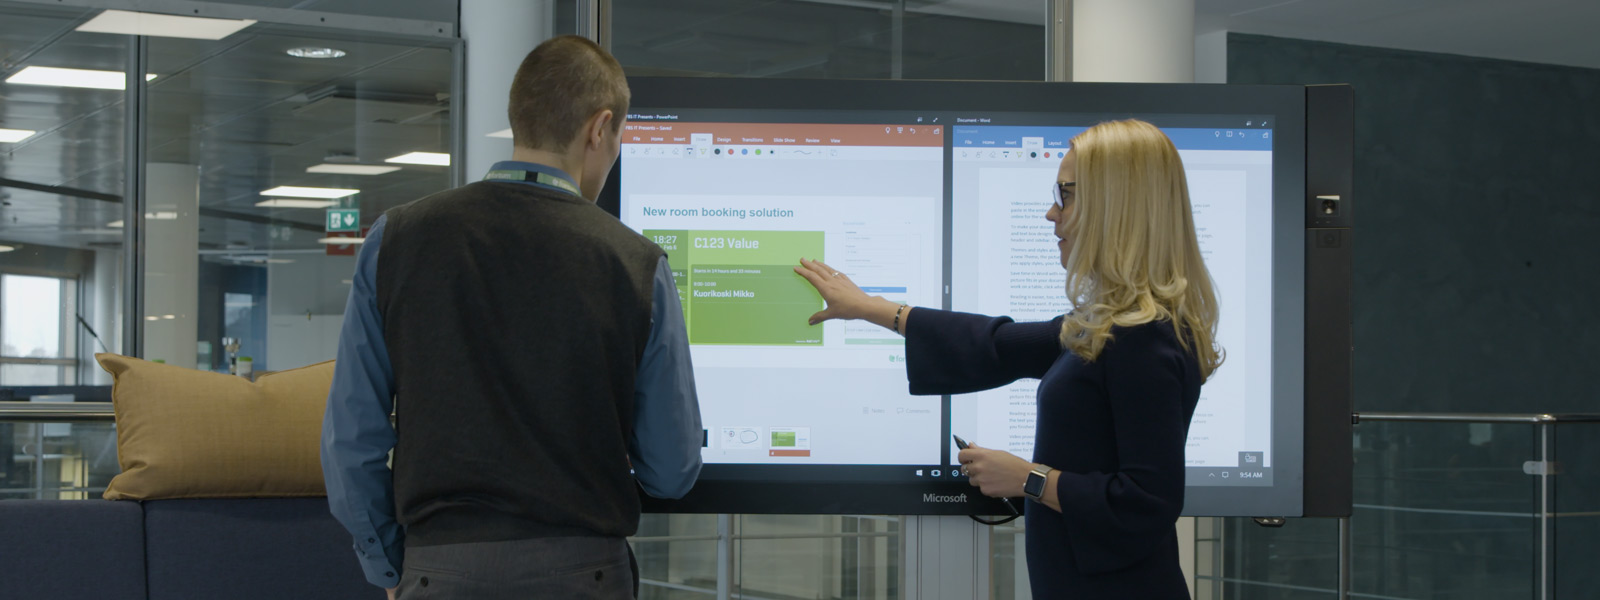 A man and woman stand in front of a Surface Hub with PowerPoint and Word open on the screen.